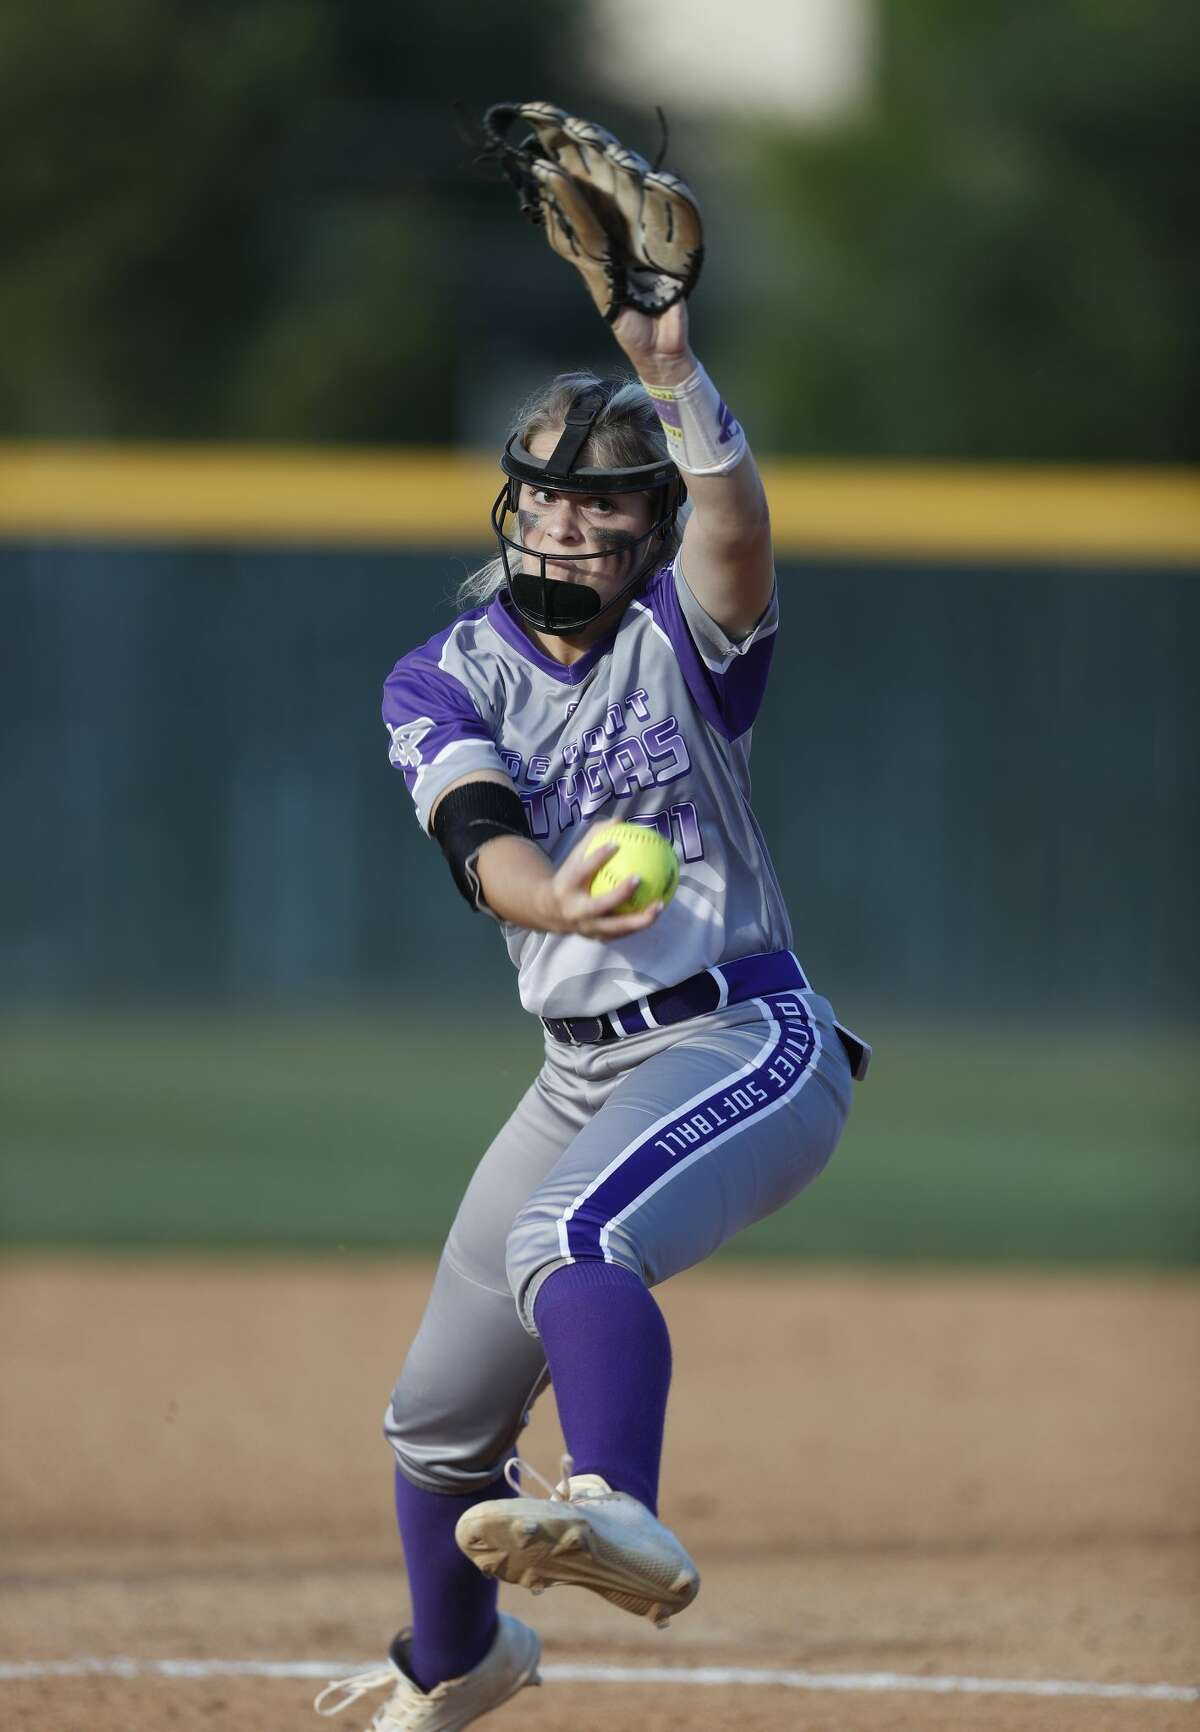 Ridge Point's starting pitcher Makinzy Herzog pitches in the first inning during the Class 6A bi-district softball playoffs between Ridge Point and Cinco Ranch High Schools at Stratford High School, Thursday, April 27, 2017, in Houston. ( Karen Warren / Houston Chronicle )